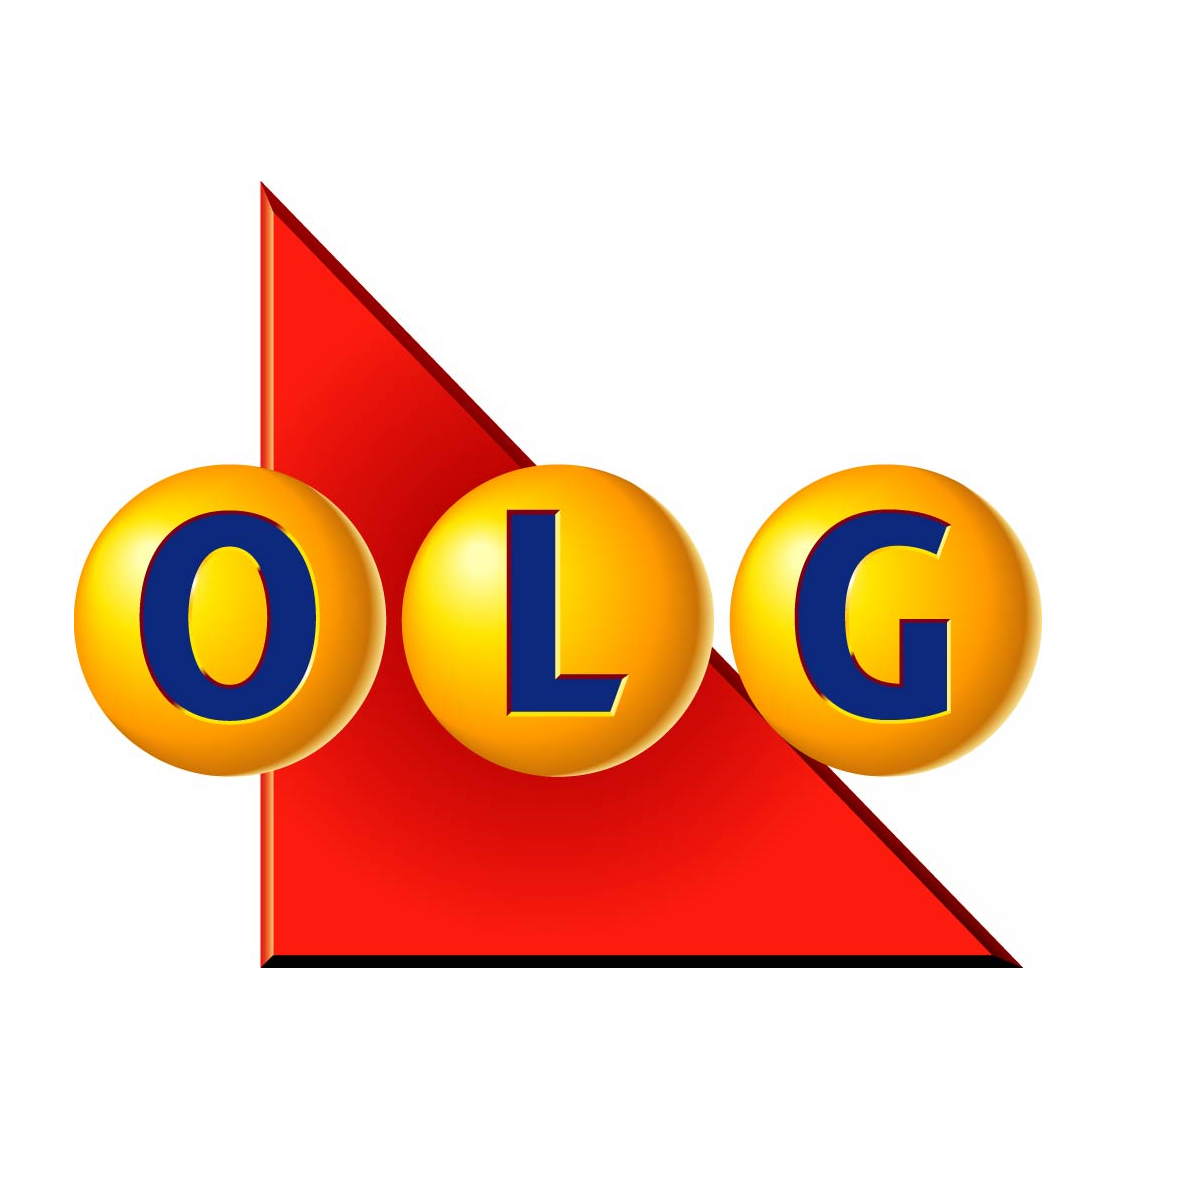 WANT TO WIN 1 OF 2 $100 OLG VOUCHERS? RT THIS BEFORE 1PM AND YOU'RE IN THE DRAW! https://t.co/uFWWLFQYUl